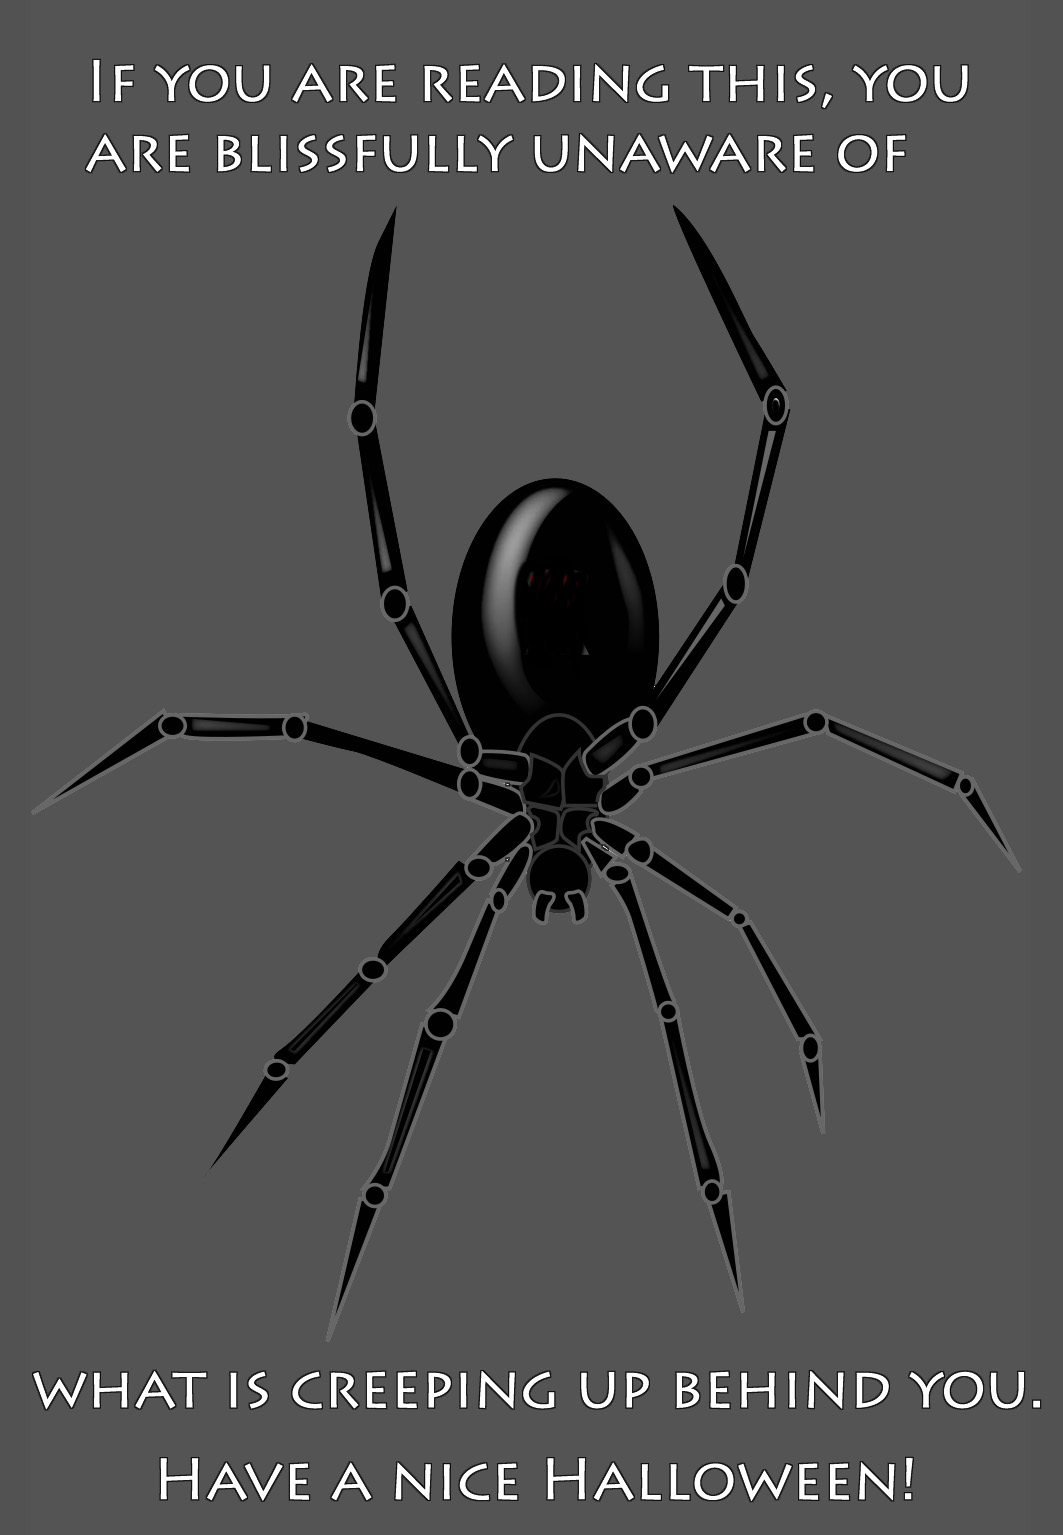 spider creeping up behind you card